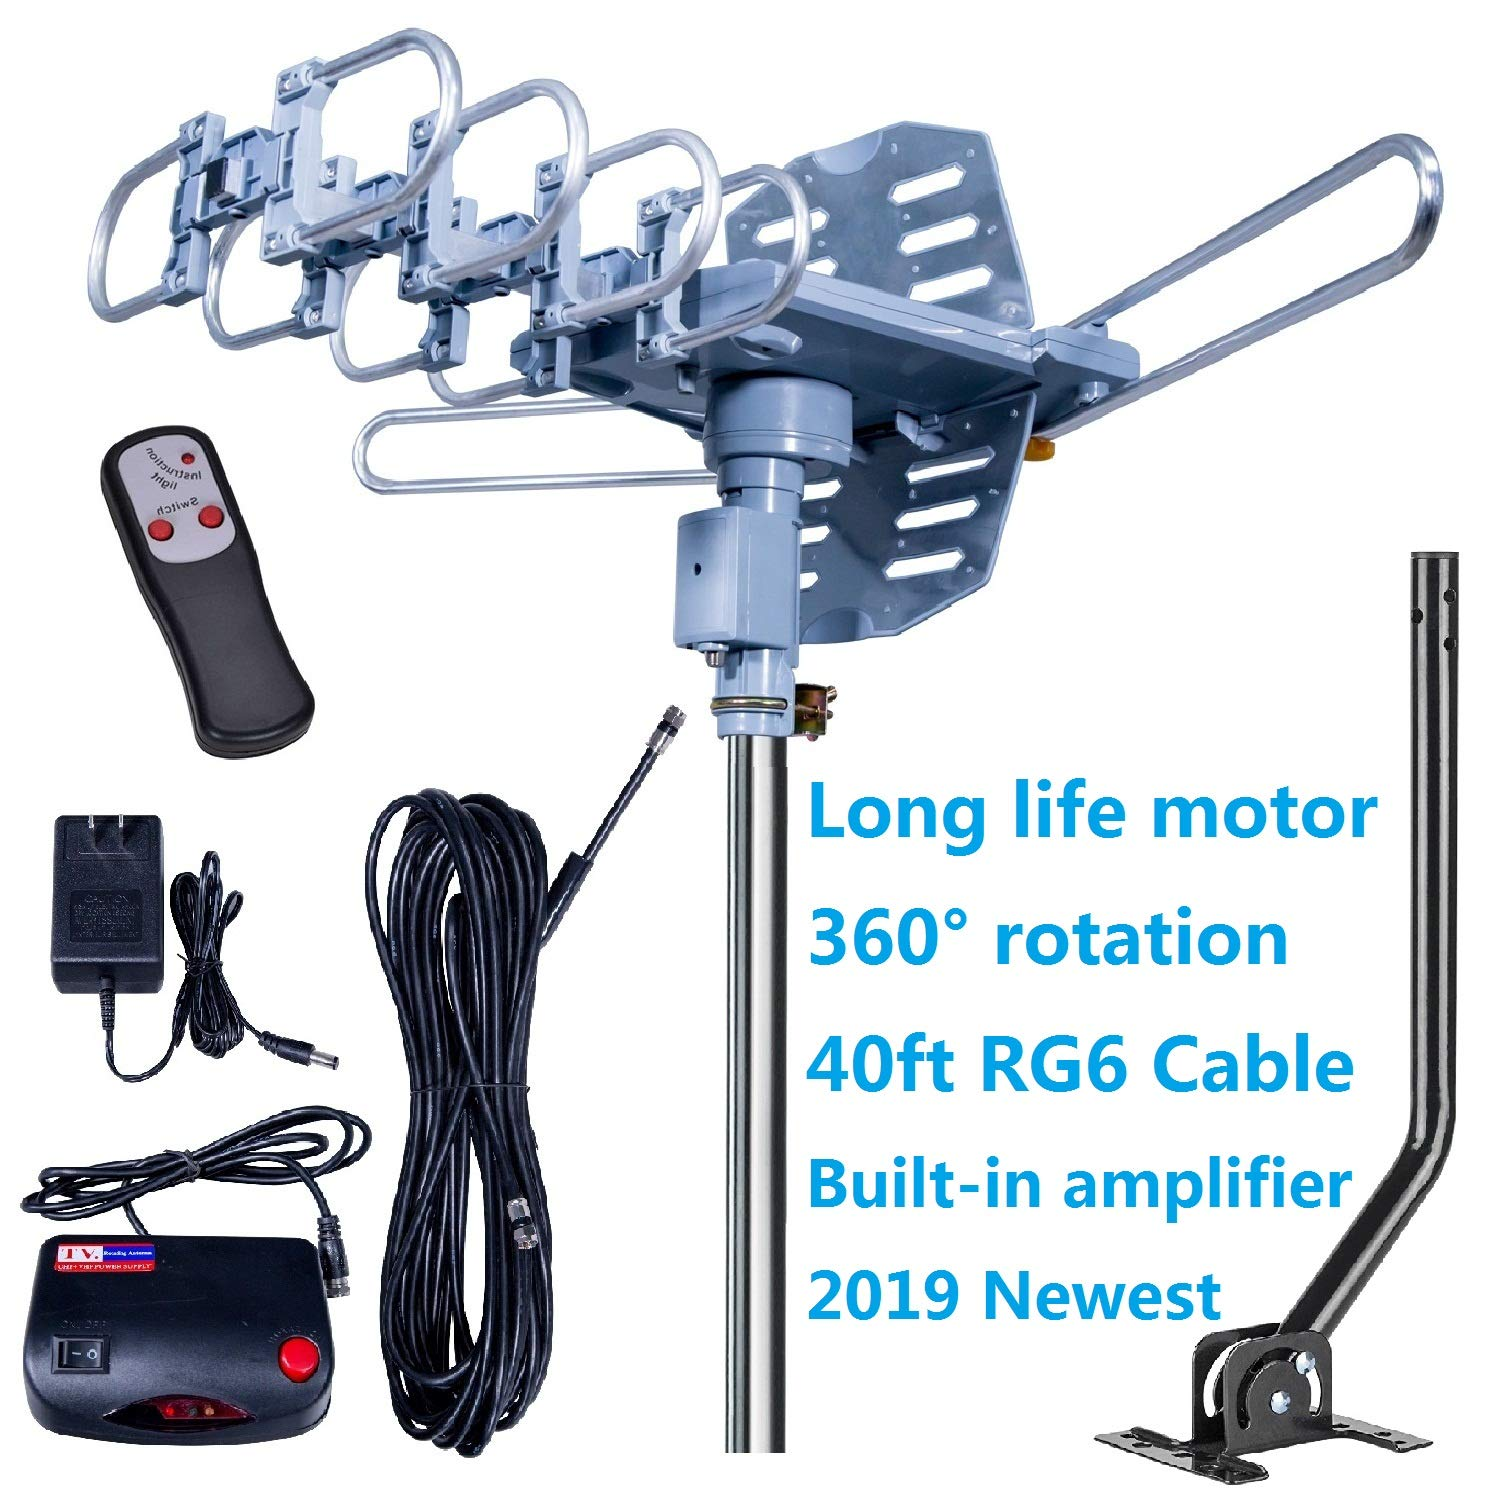 2019UPDATED-150 Miles-Amplified Outdoor TV Antenna+Mount Pole-4K/1080p High Reception+40FT RG6 Cable-360°Strong Motor Rotation Wireless Remote- Snap On Installation+2TV Function by Fardalo